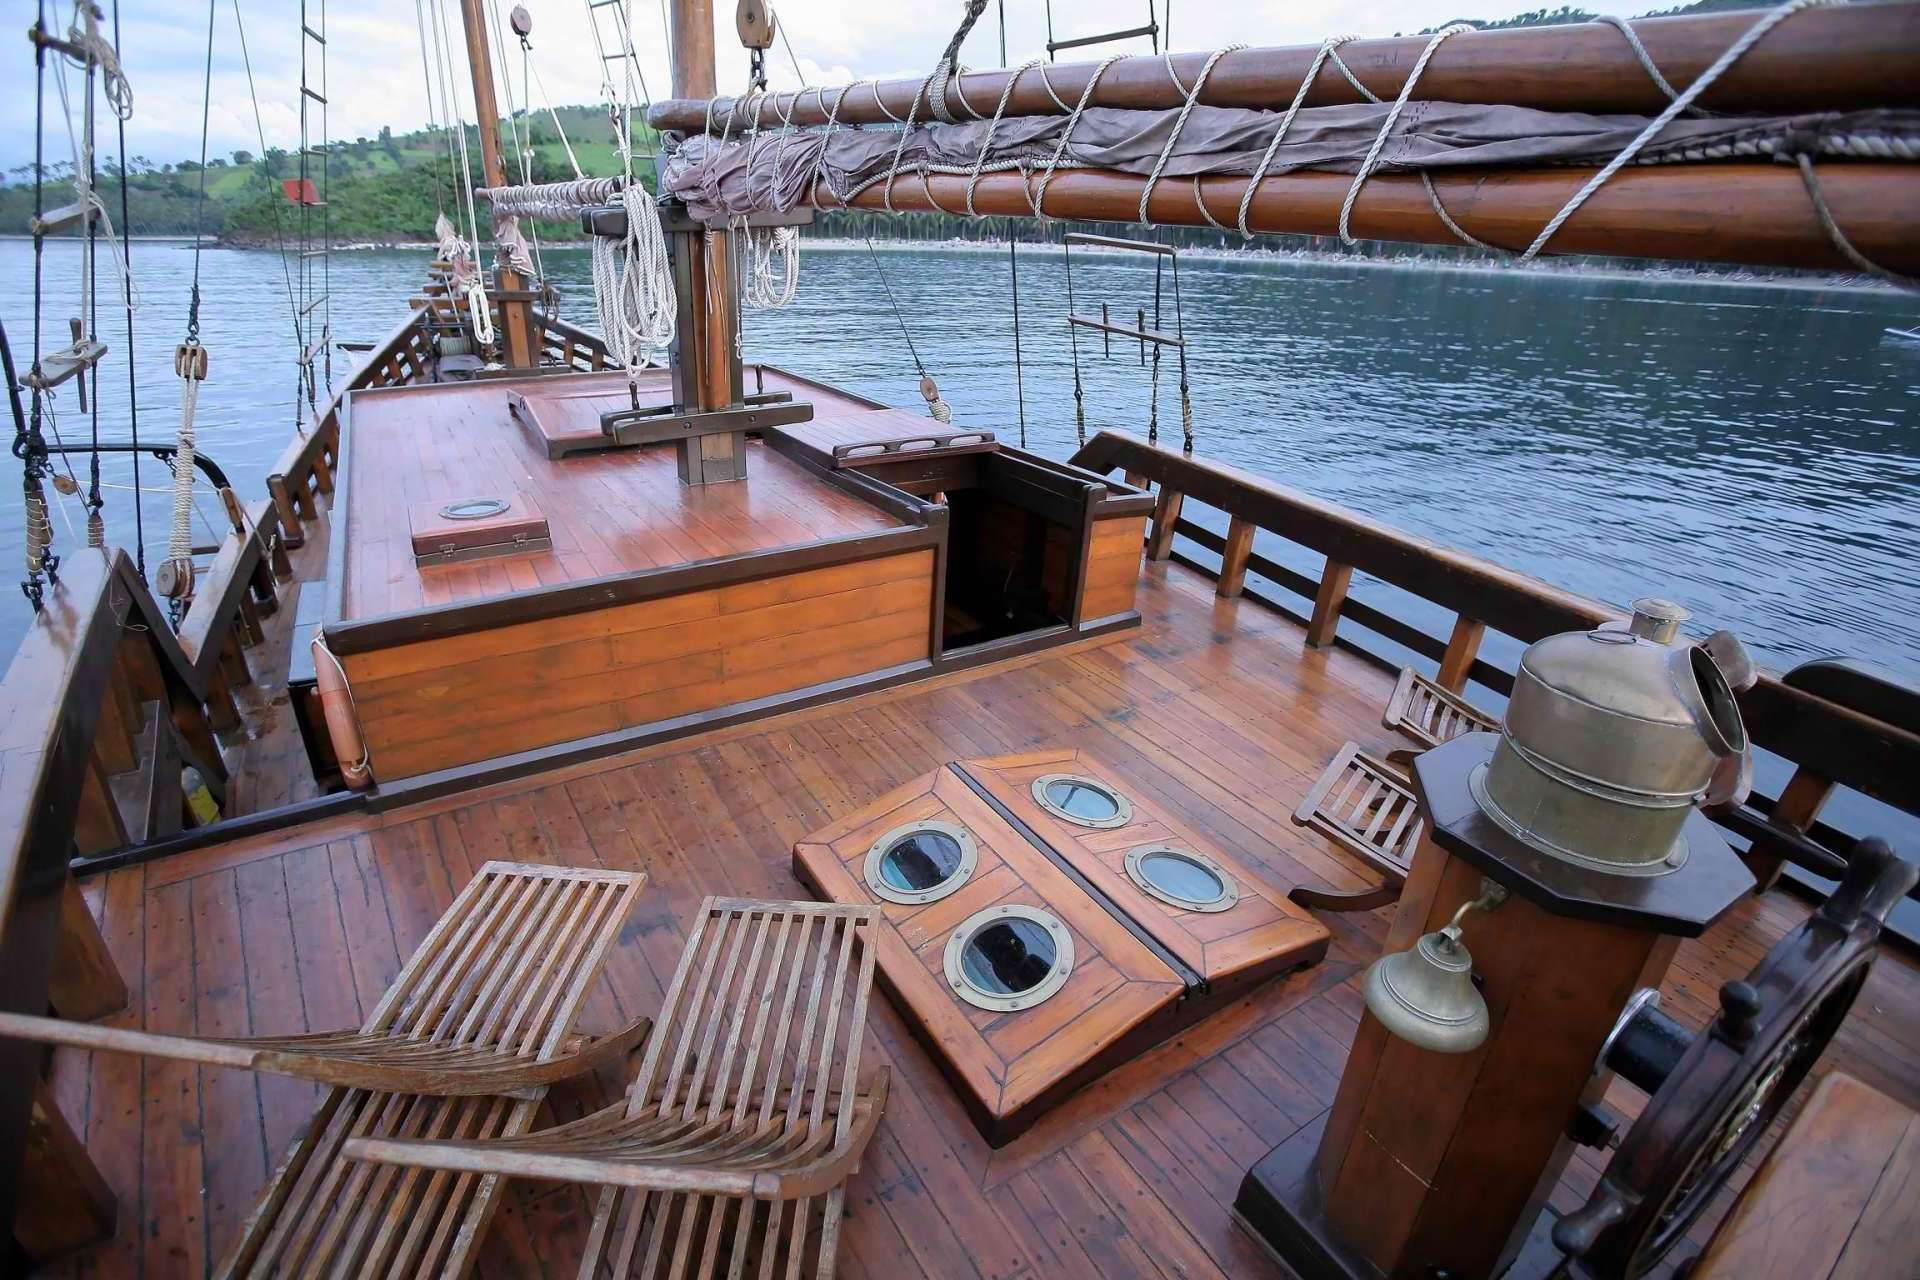 25m 2003 Phinisi Gaff Rigged Schooner